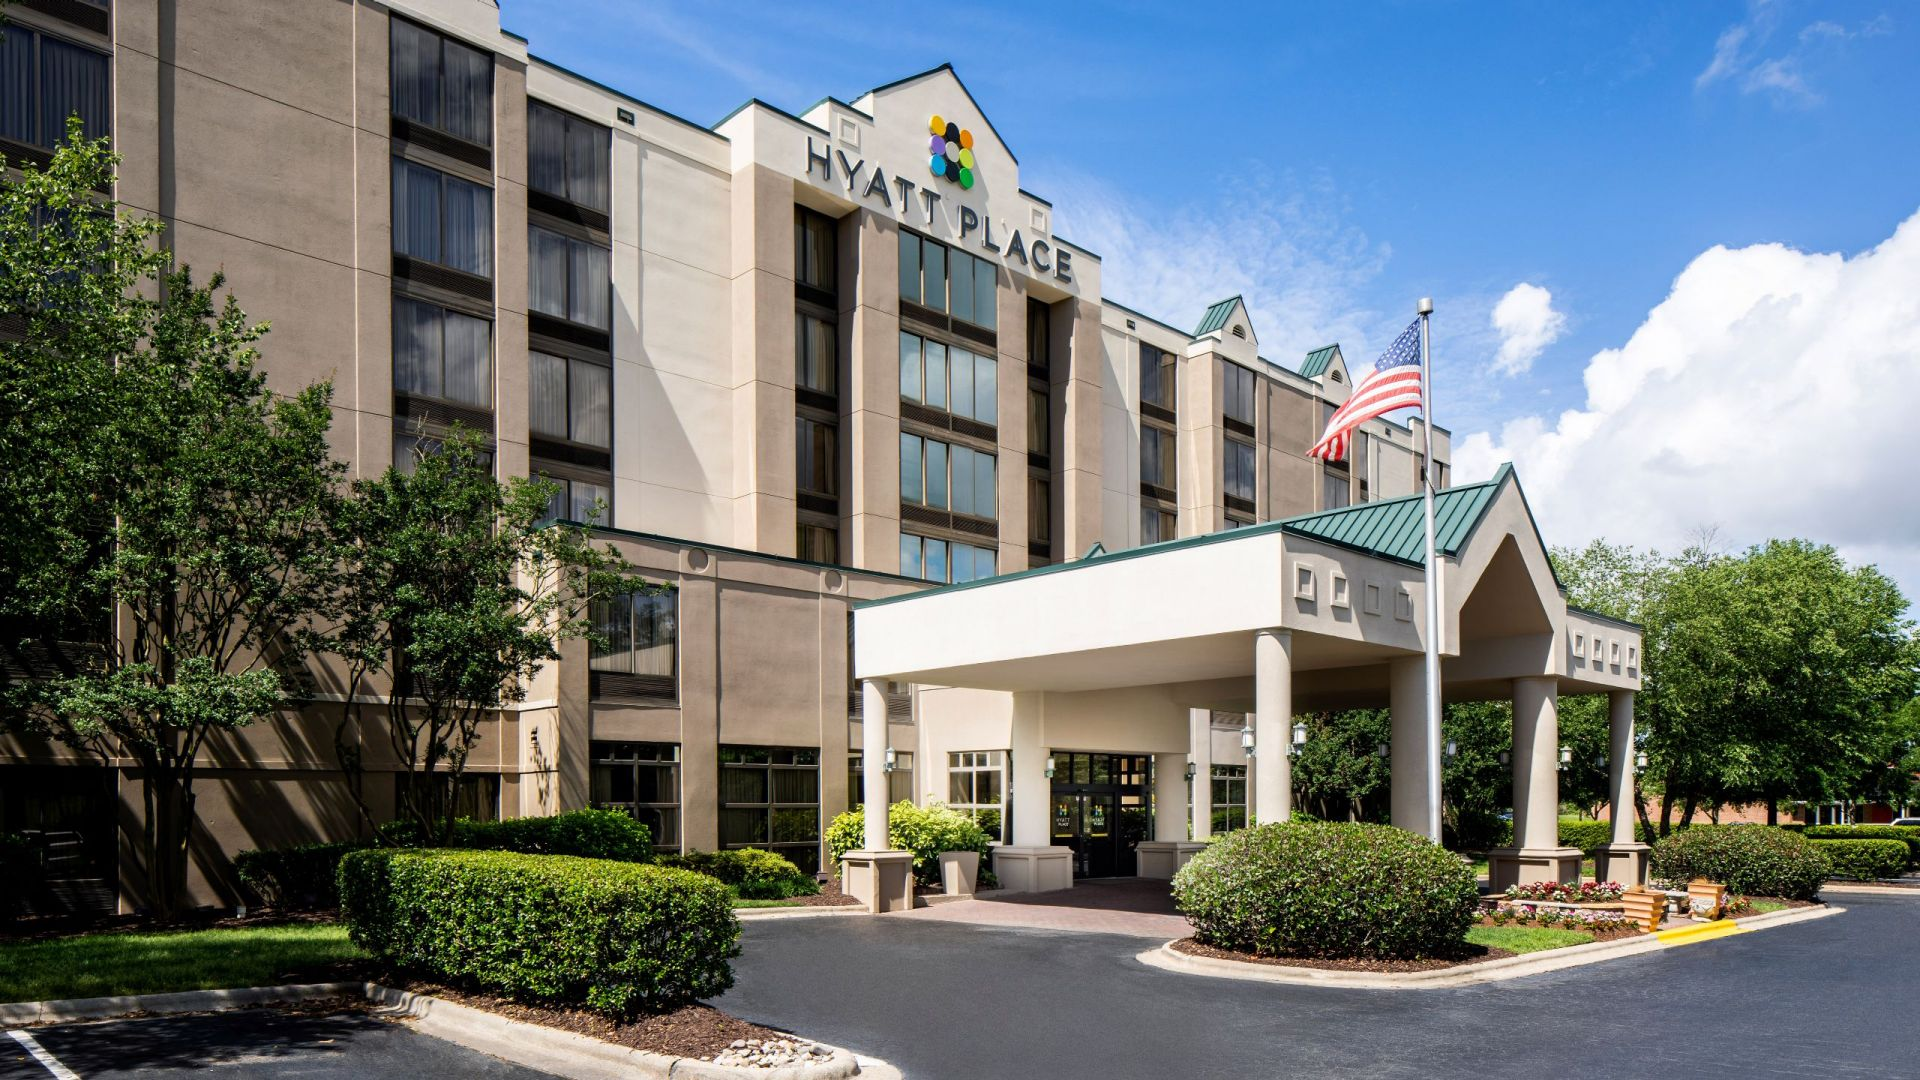 Cozy Hotels Near Charlotte Premium Outlets Hyatt Place Charlotte